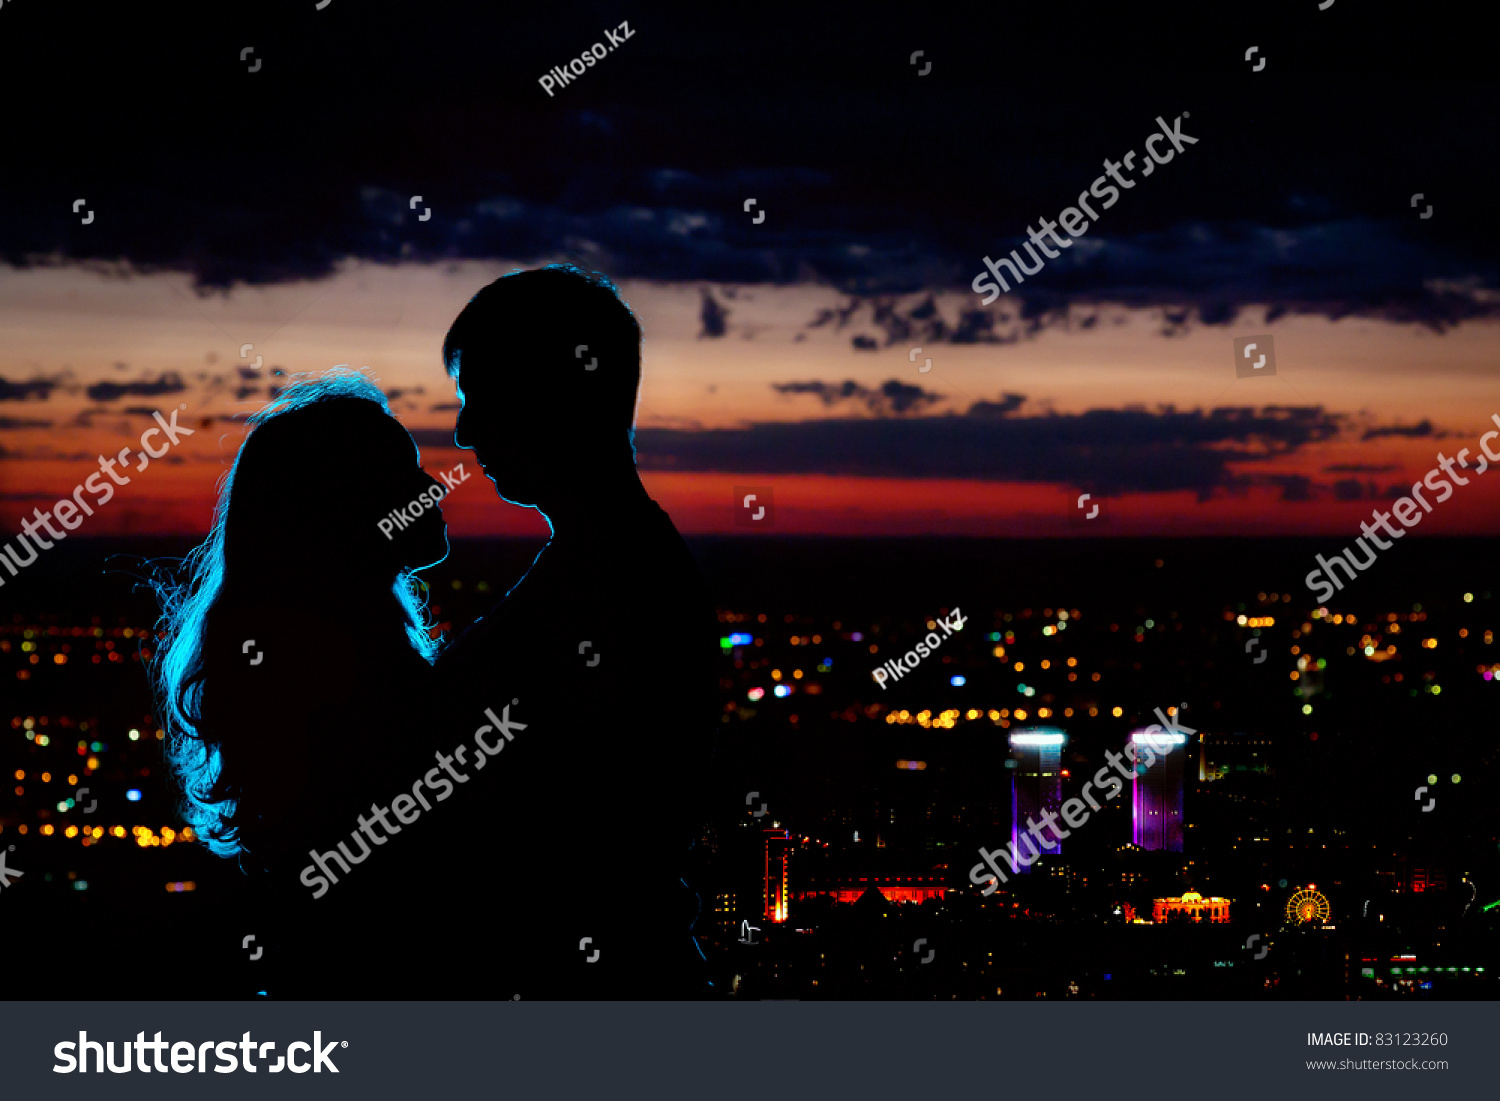 Silhouette of the holy cross on background of storm clouds stock - Young Couple Silhouette Hugging And Looking At Each Other Outdoors At Night Neon City Background